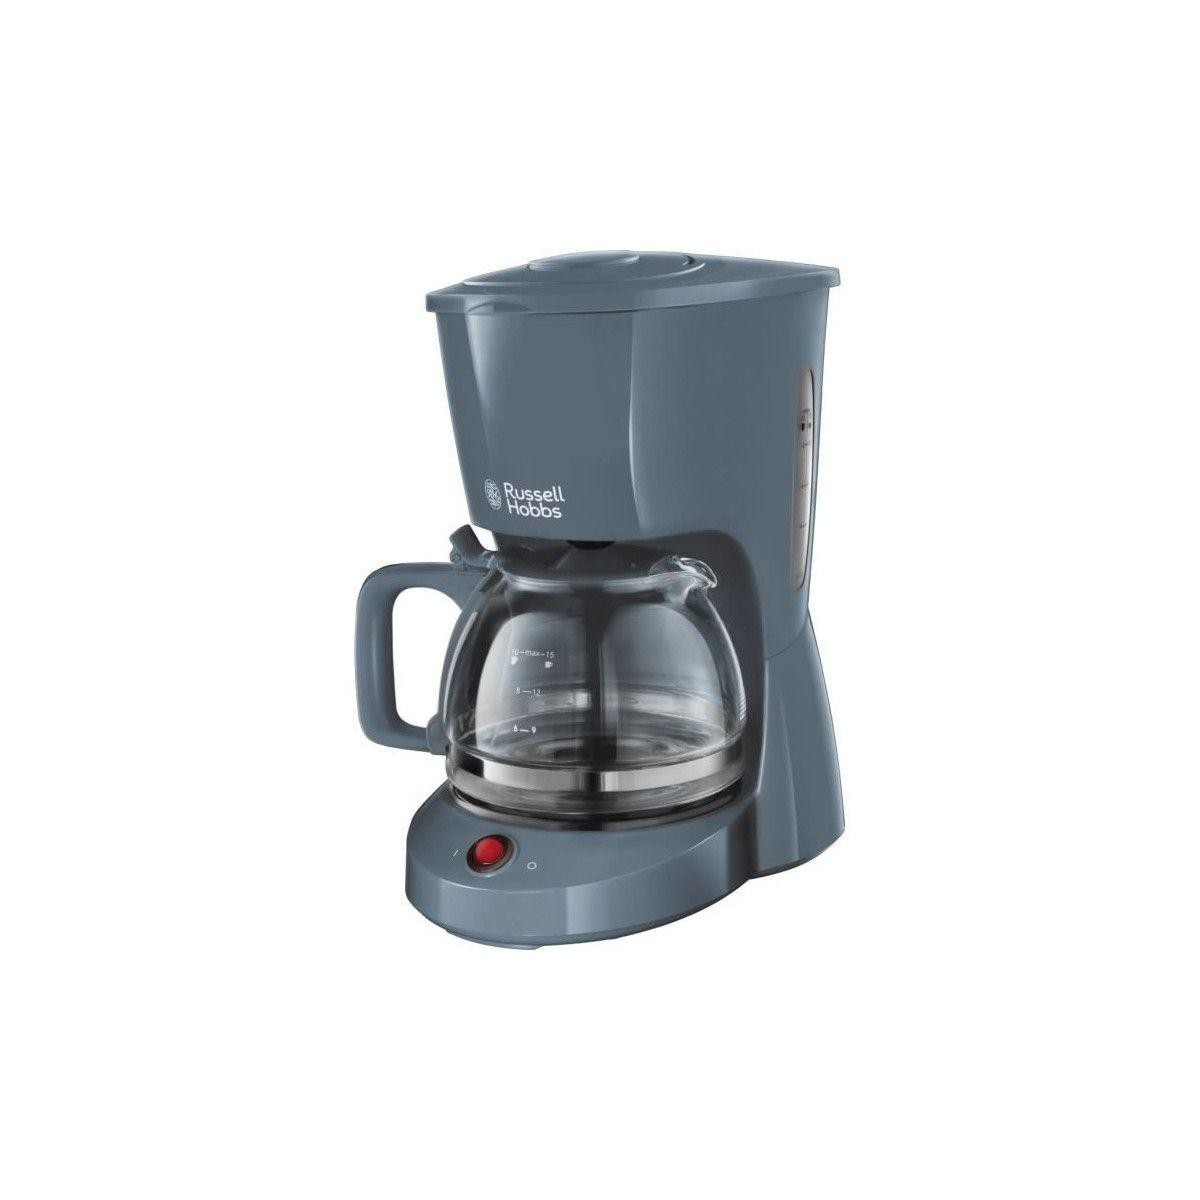 Russell Hobbs Russell Hobbs 22613-56 Machine A Cafe, Cafetiere Filtre 1,25l Texture, Grande Capacite - Gris